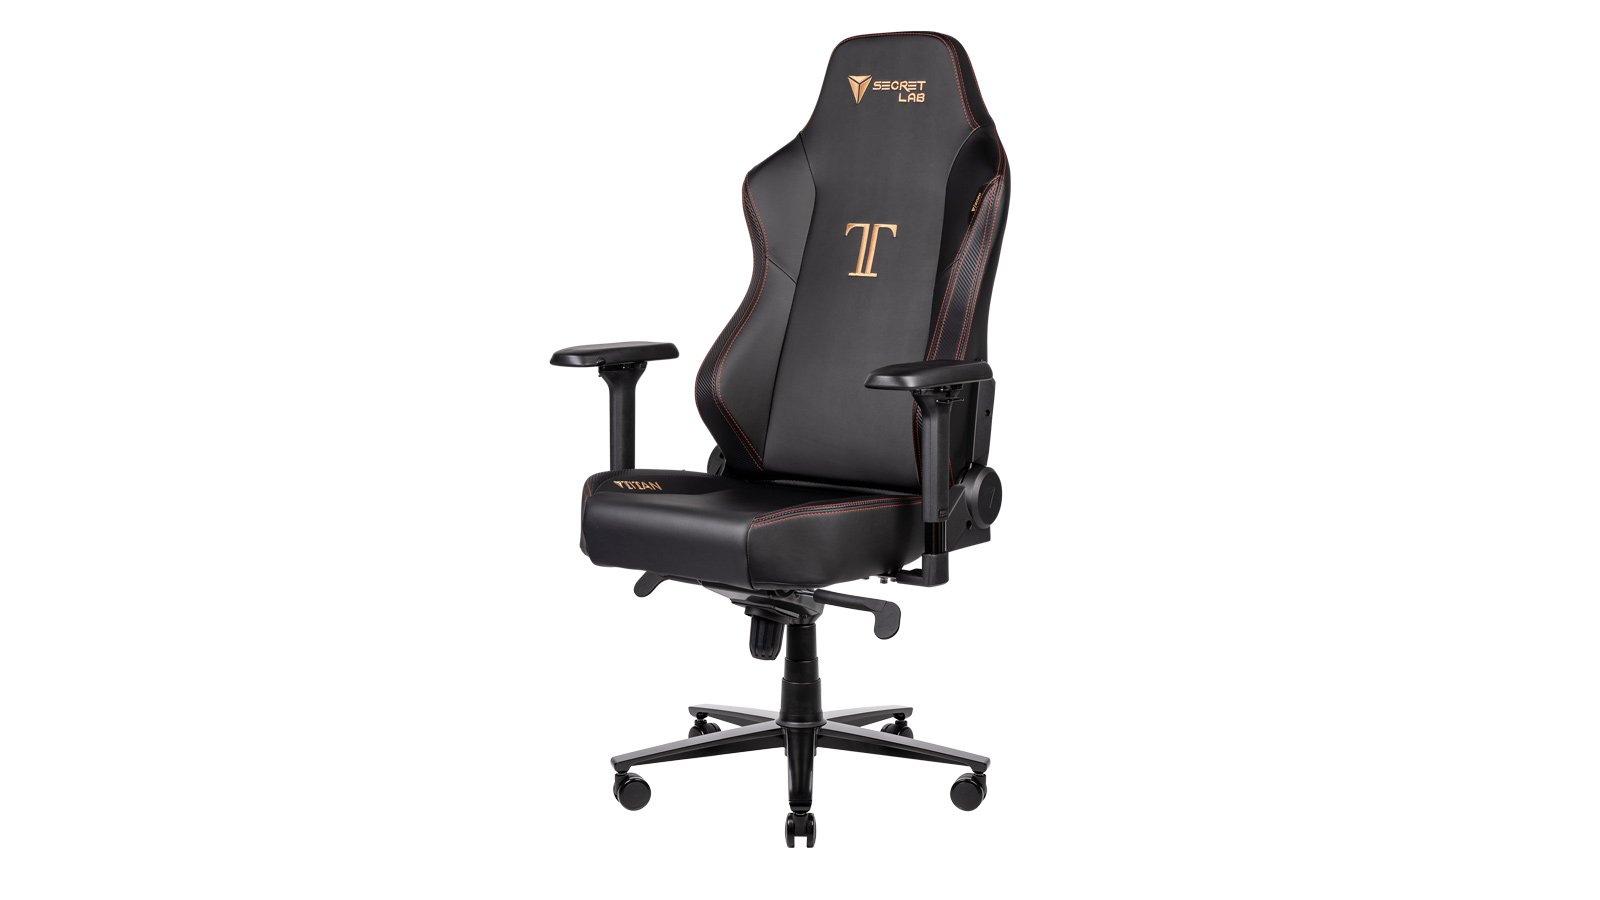 Best gaming chair 2019: The best PC gaming chairs you can buy in the